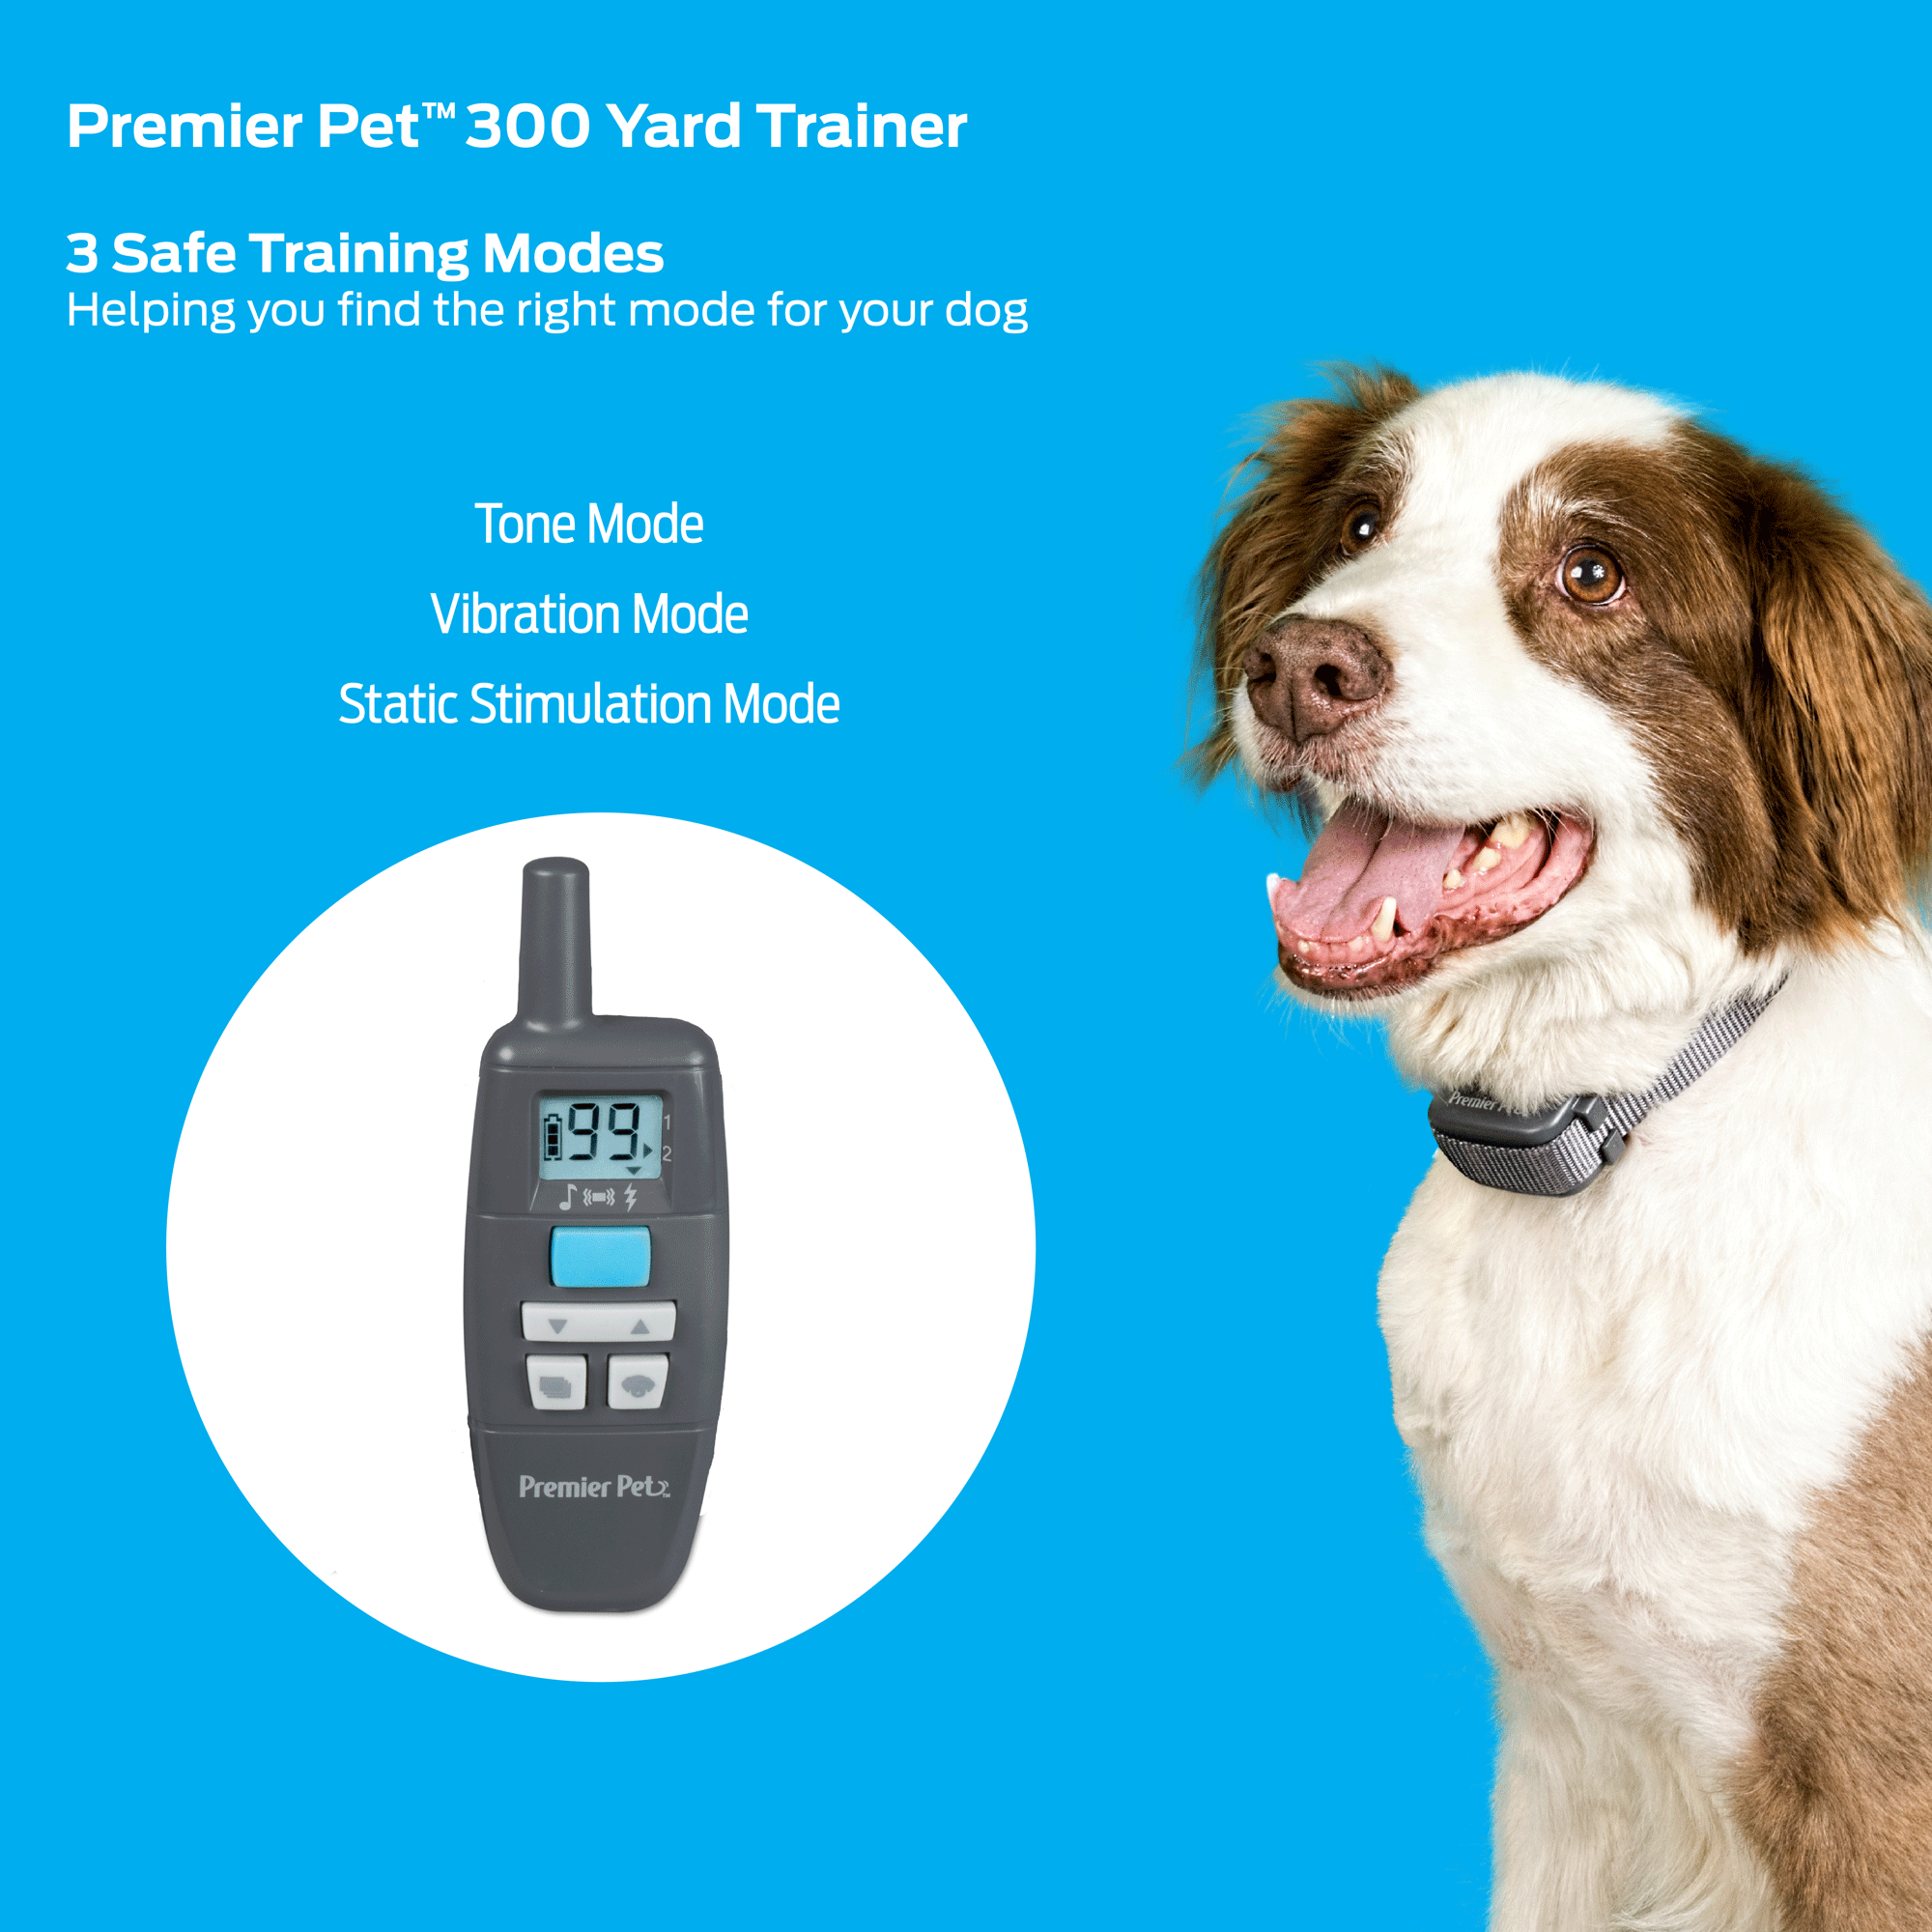 Premier Pet 300 Yard Remote Trainer - Easy-To-Use Dog Training